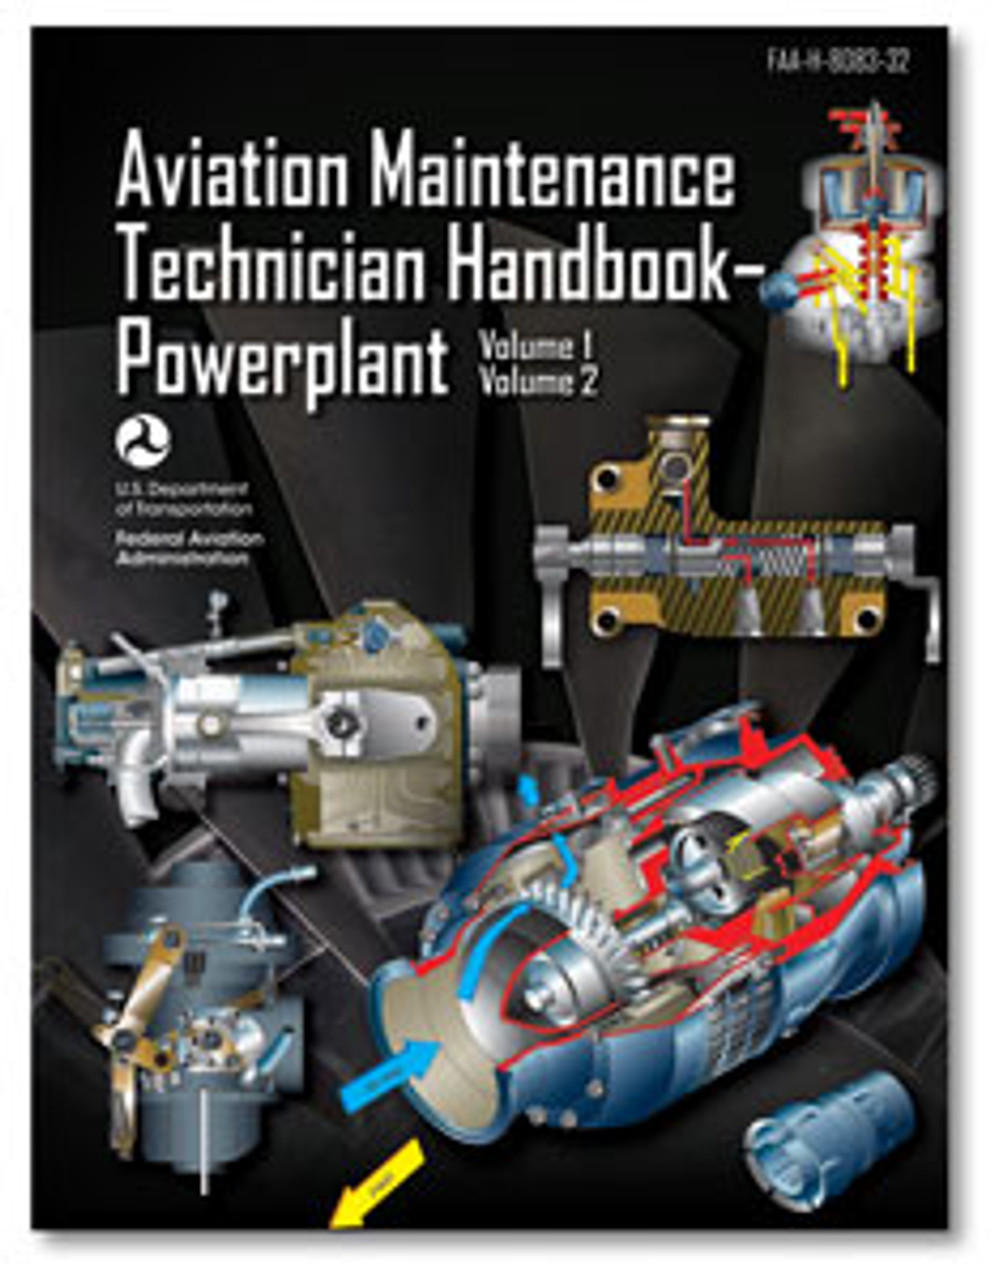 ASA Aviation Maintenance Technician Handbook: Powerplant Volumes 1 and 2